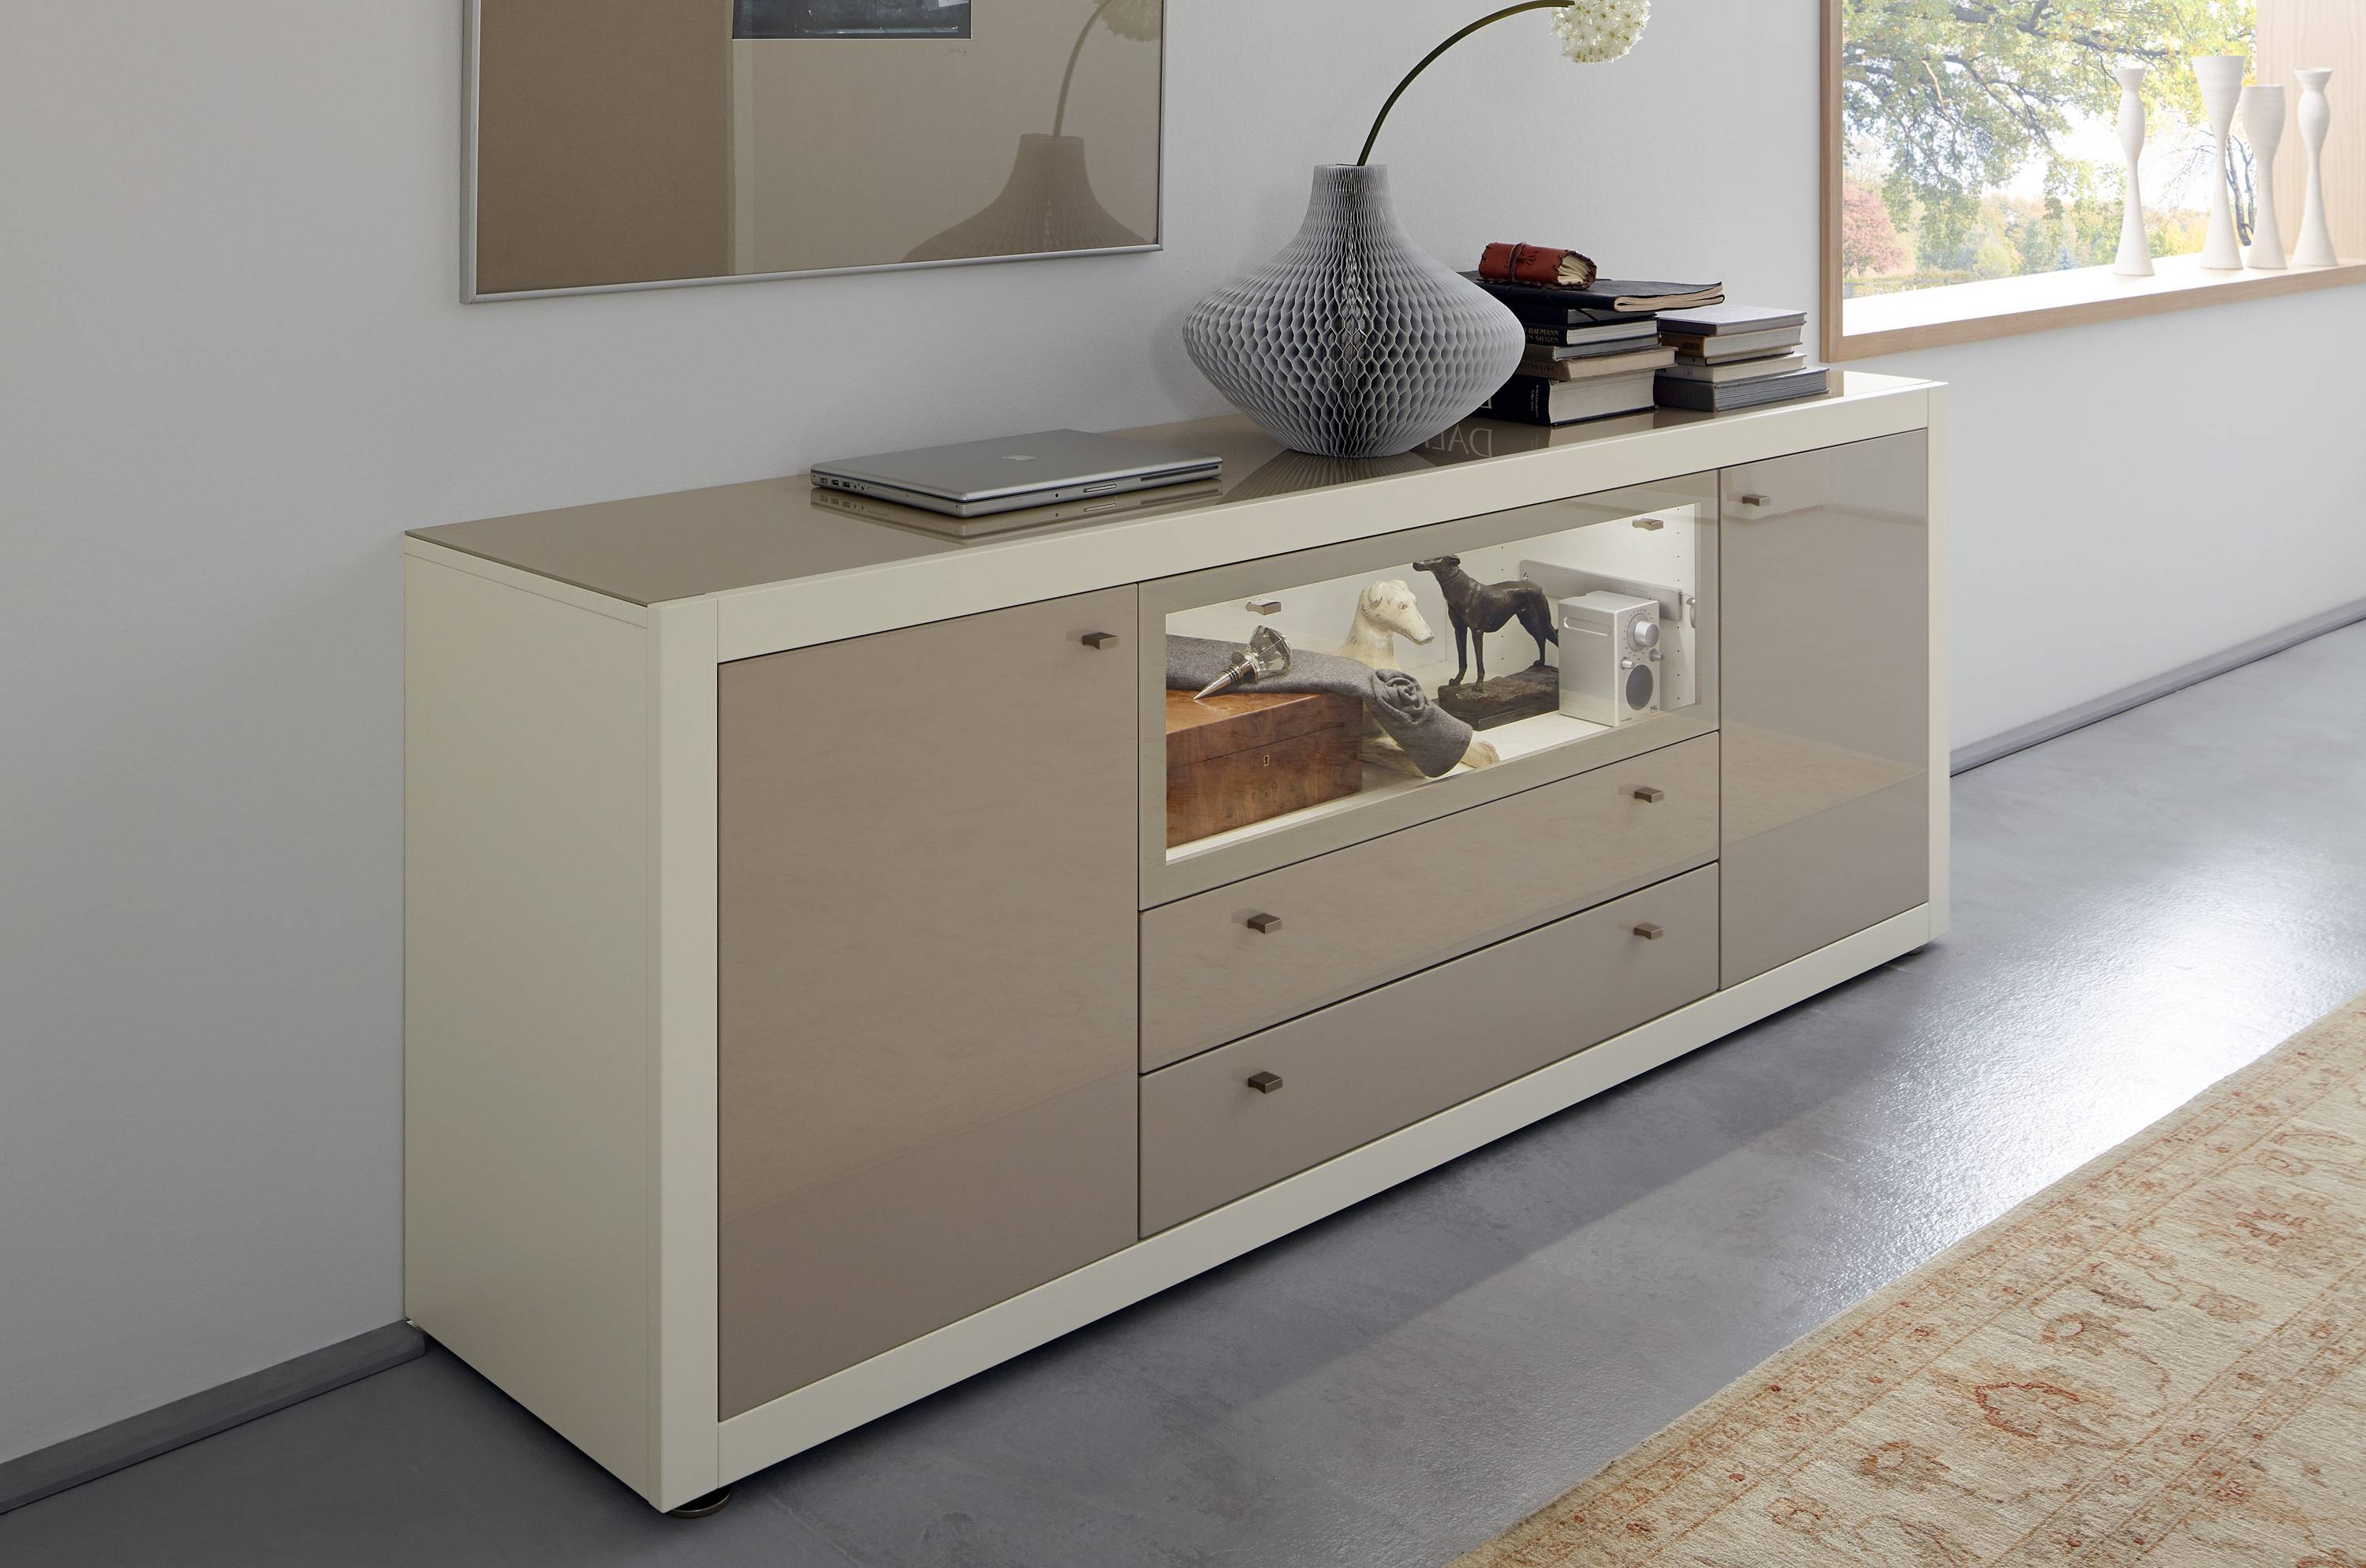 Antique Grey Oak Sideboard Design Featuring Cabinet And Drawers Regarding Glass Top Sideboards (#1 of 15)